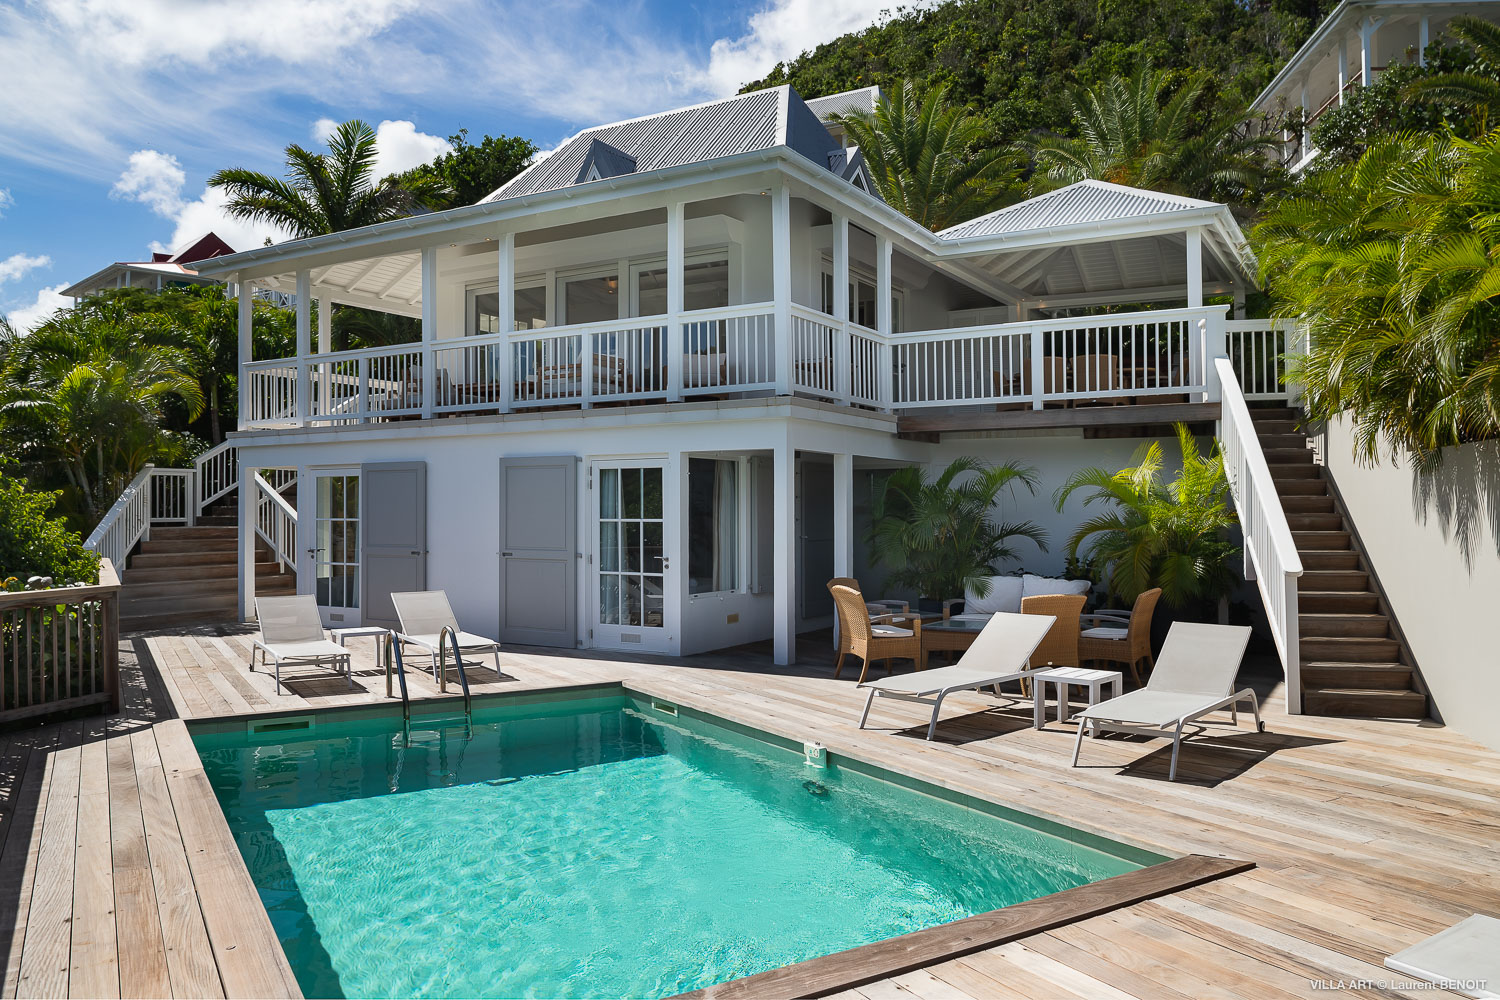 Villa Art - 3 Bedroom Villa for Rent in Flamands St Barth with Heated Pool - Outside view